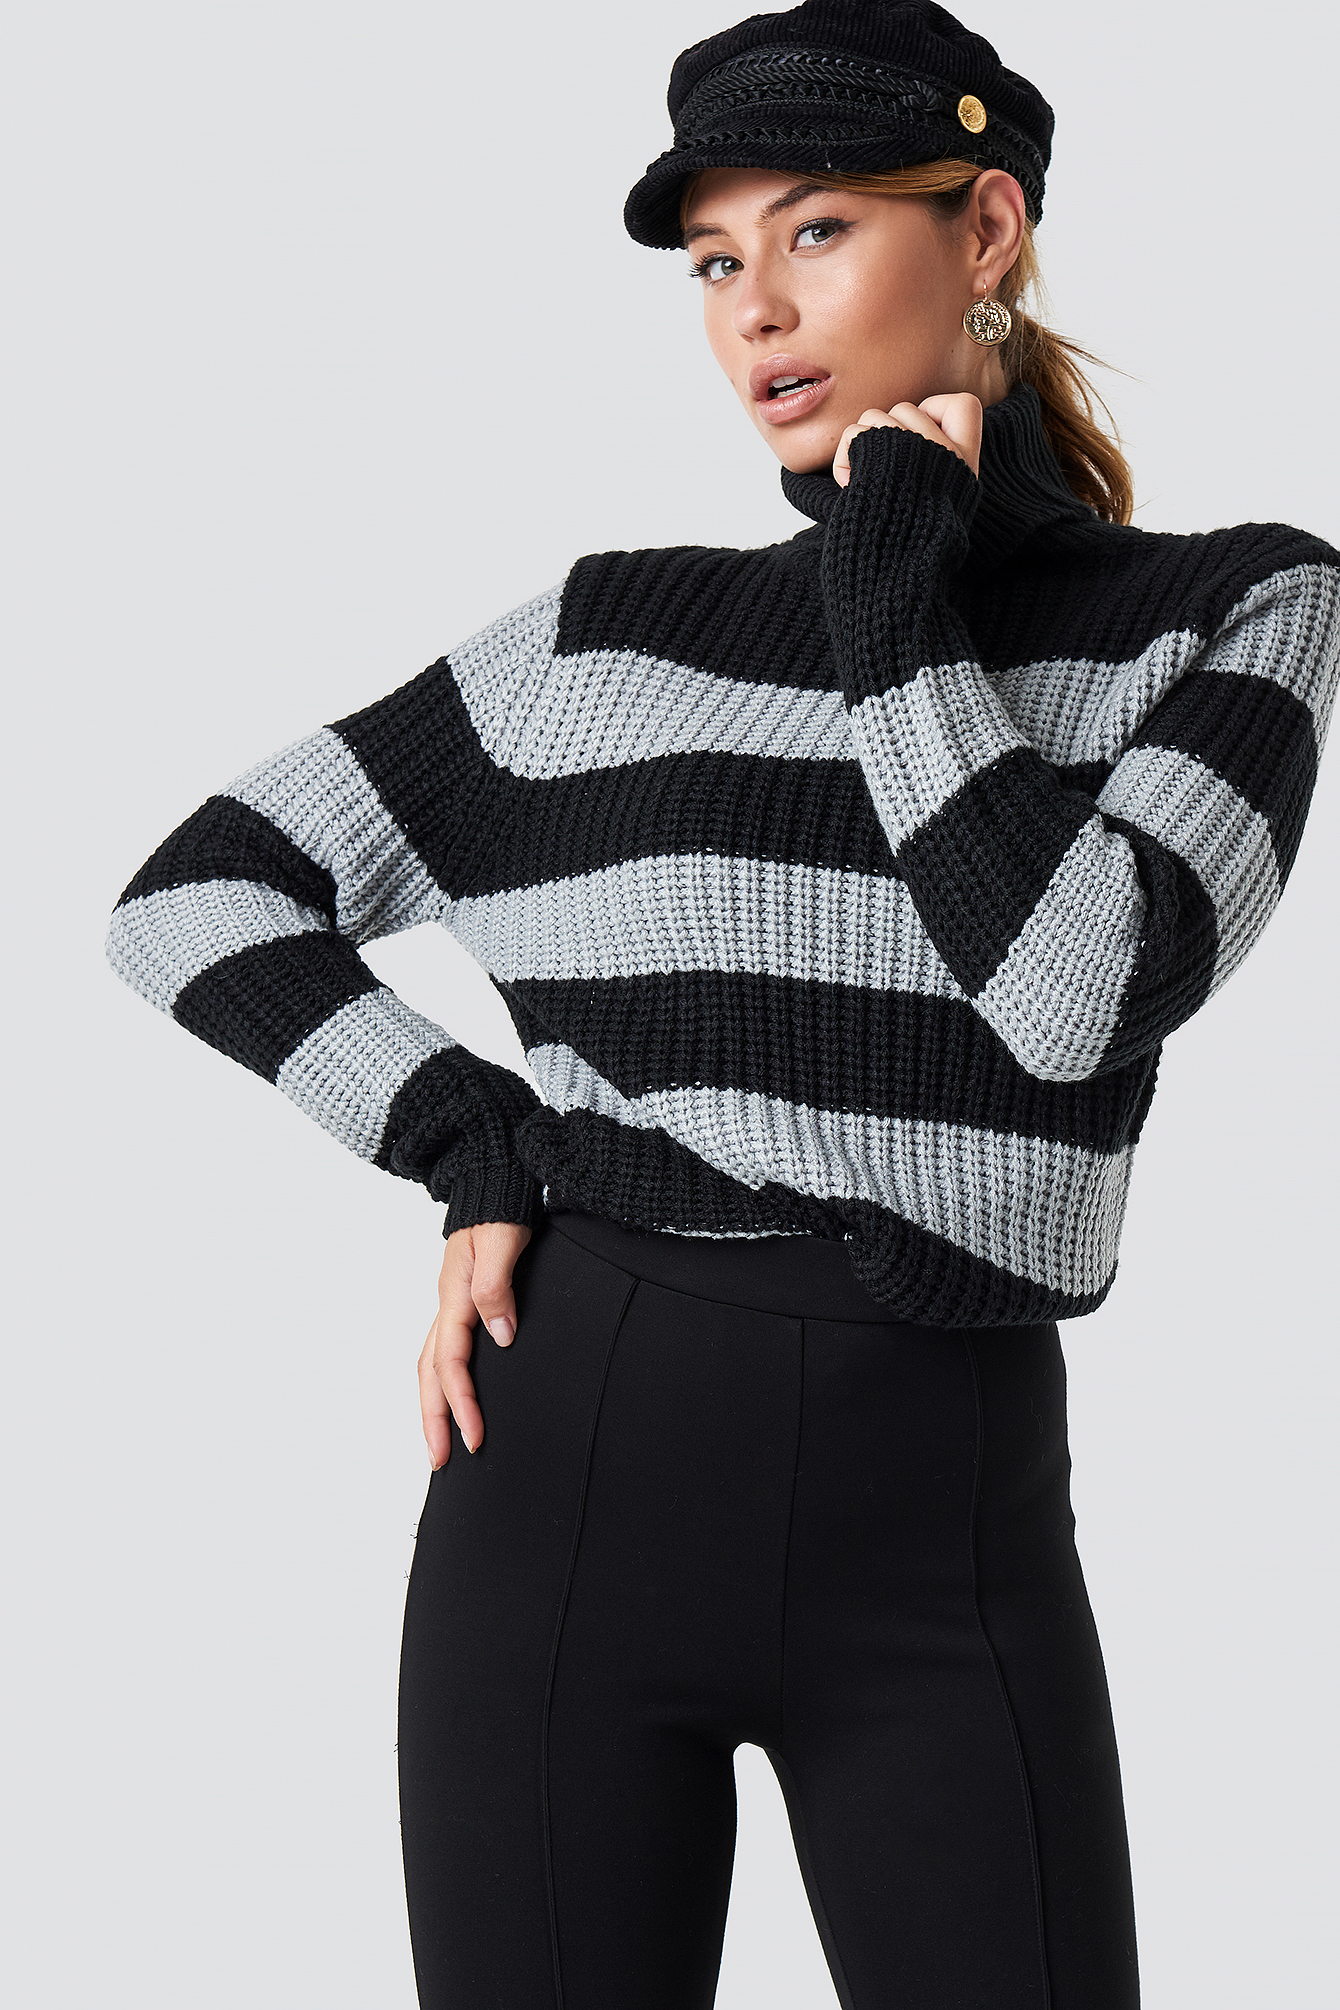 rut&circle -  Tinelle rollneck knit - Black,Grey,Multicolor